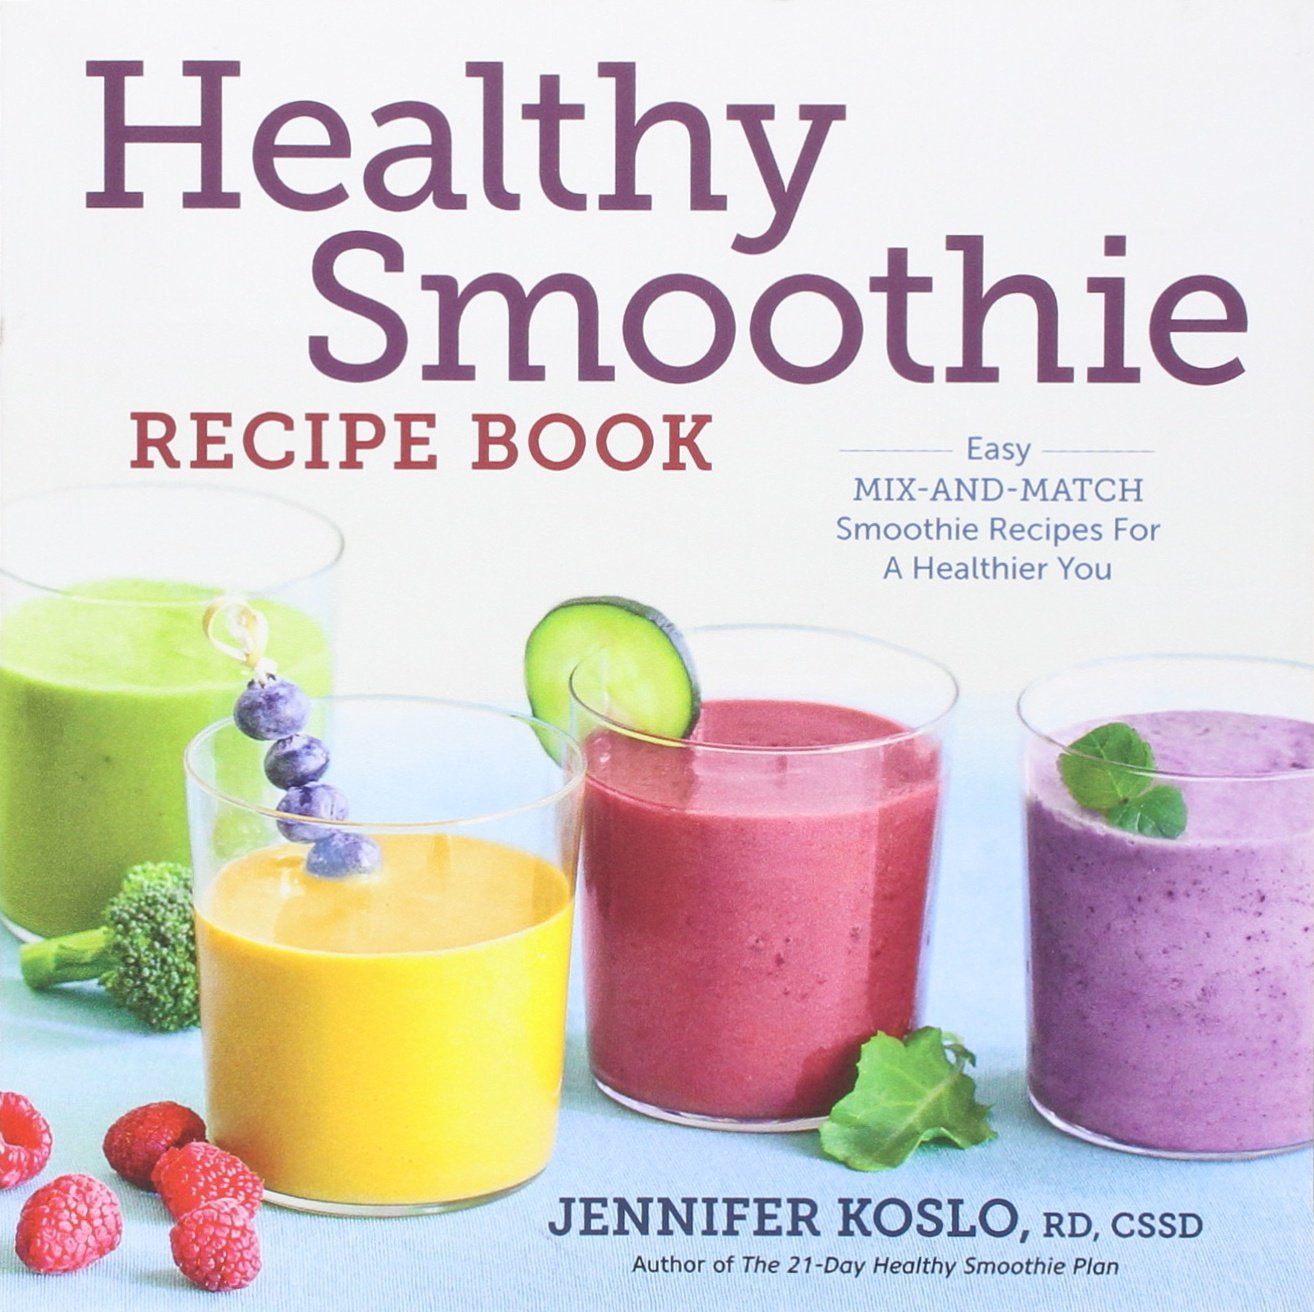 Easy Healthy Smoothie Recipes  Cheapest copy of Healthy Smoothie Recipe Book Easy Mix